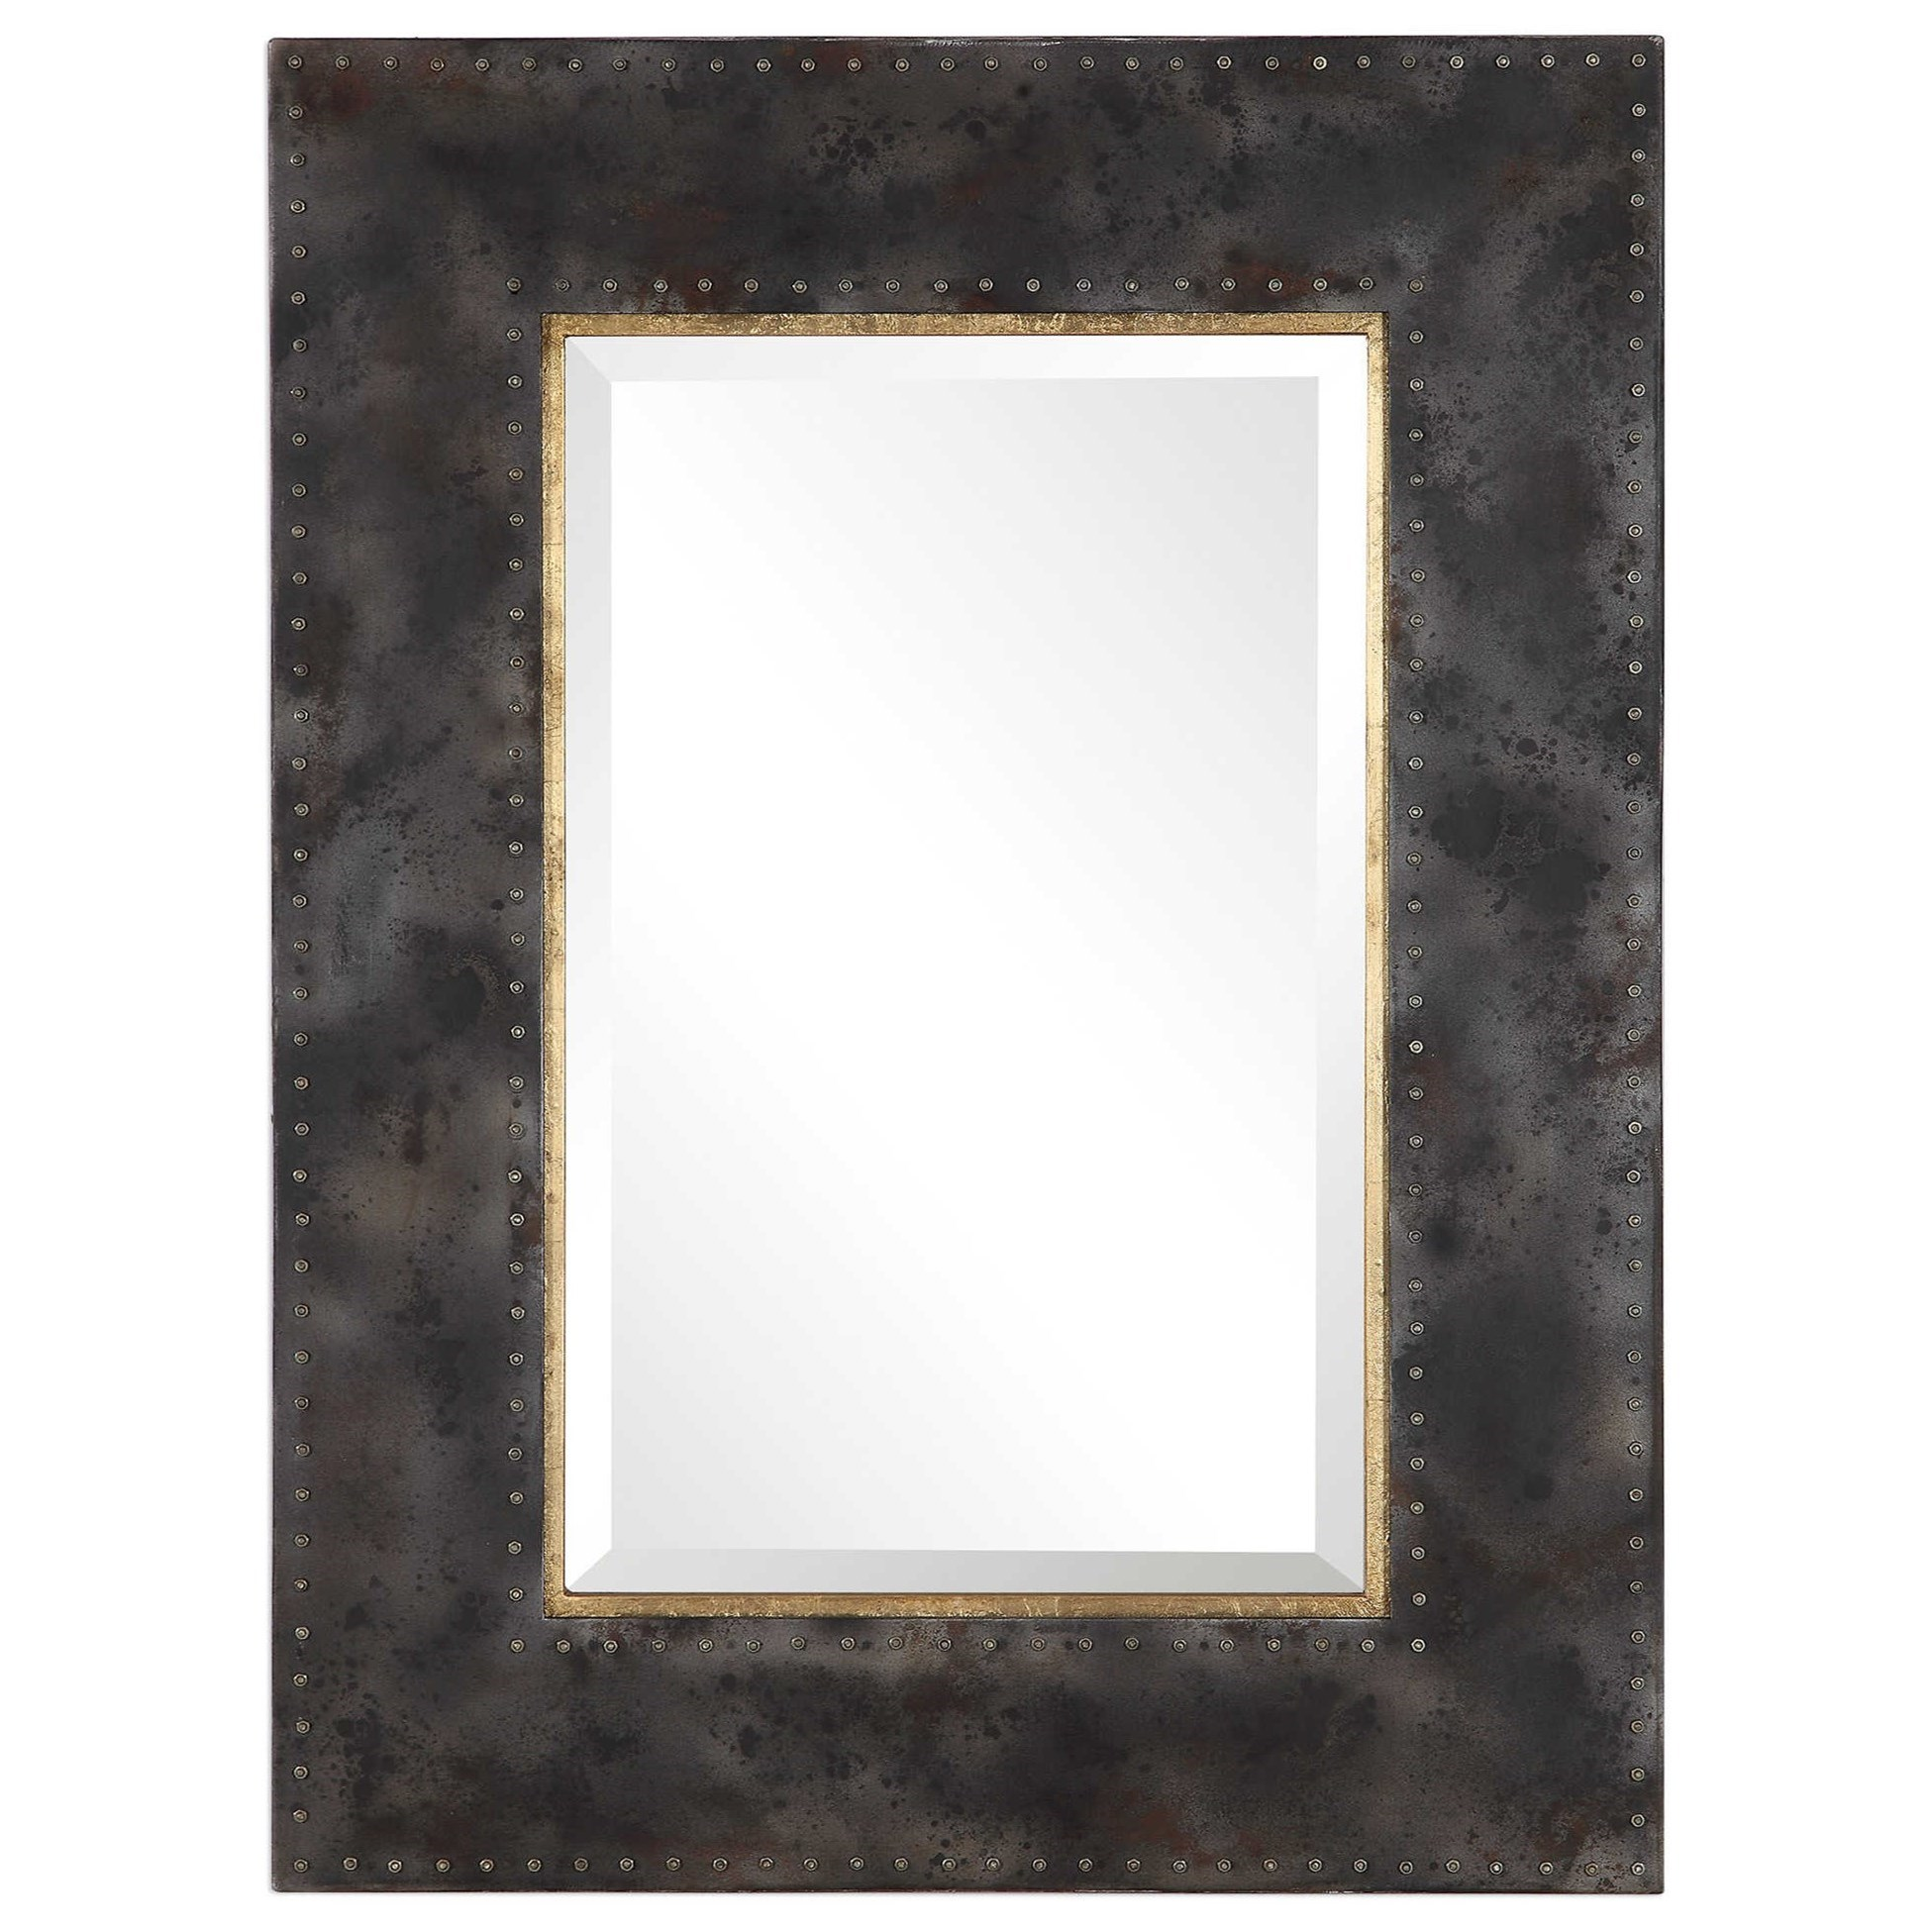 Amparo Industrial Mirror